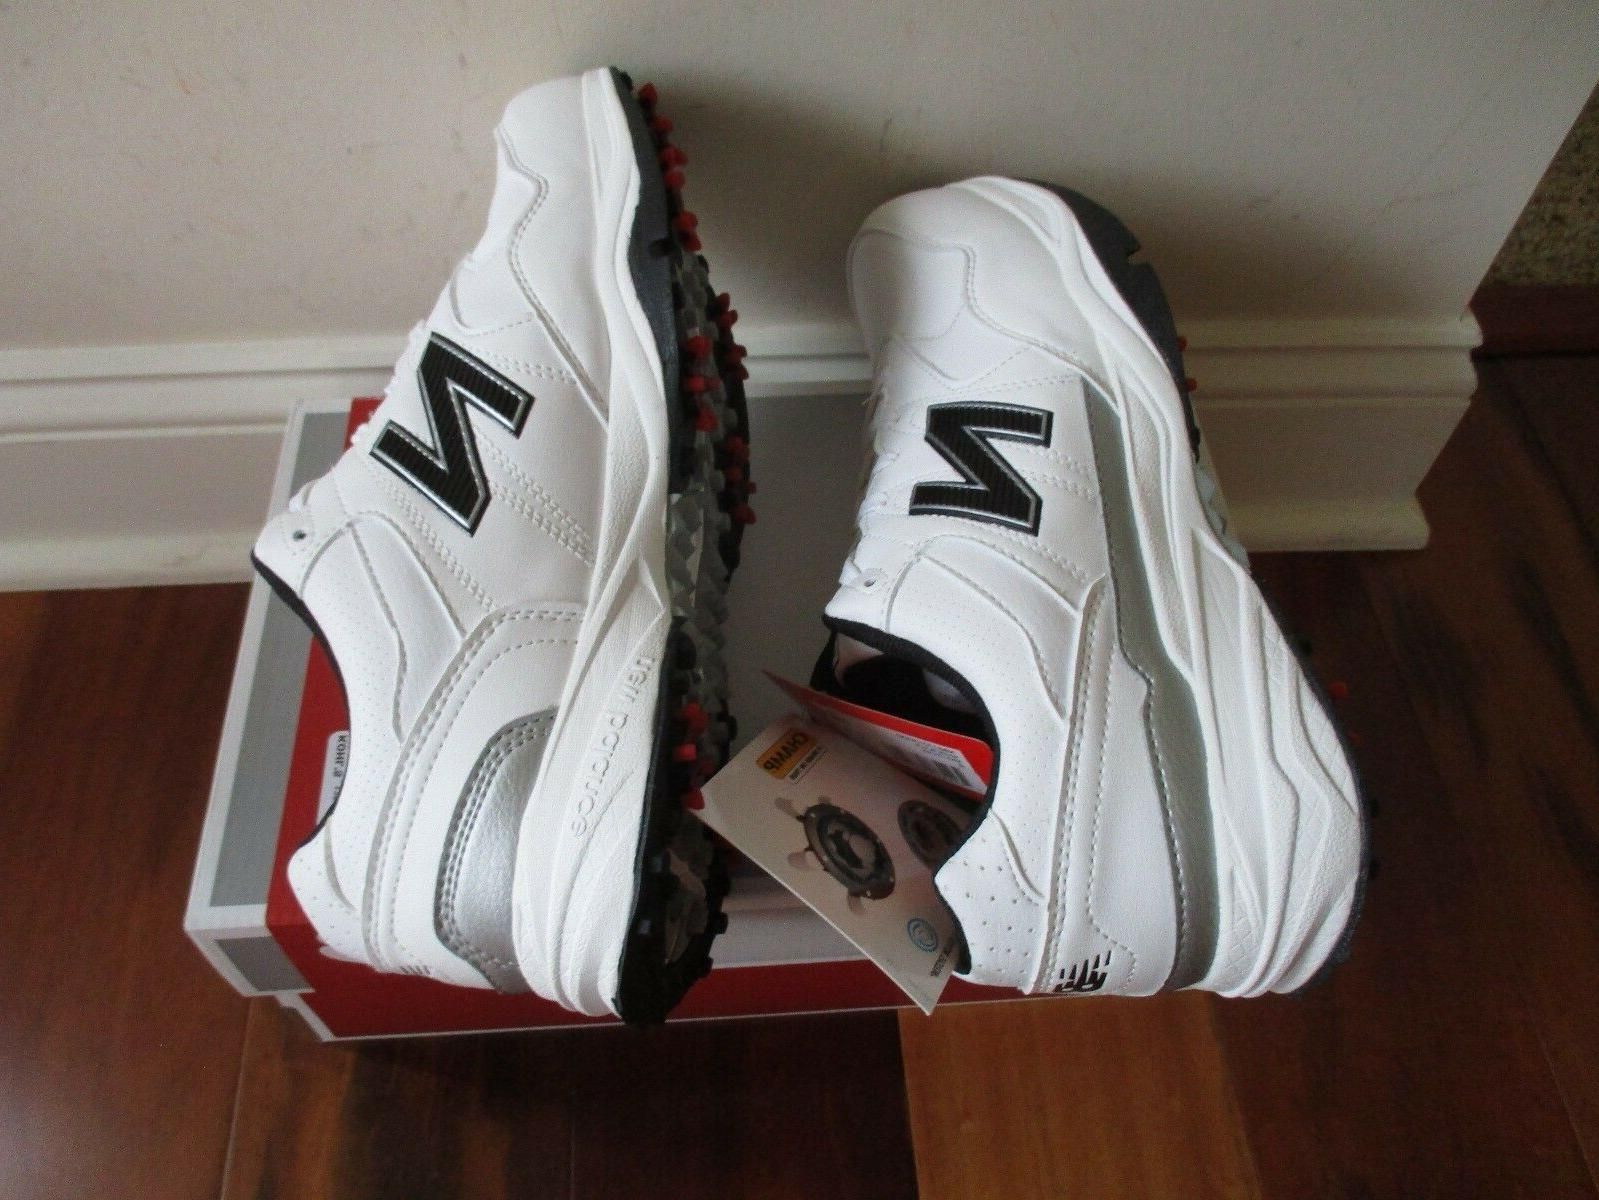 BNIB Men's Size